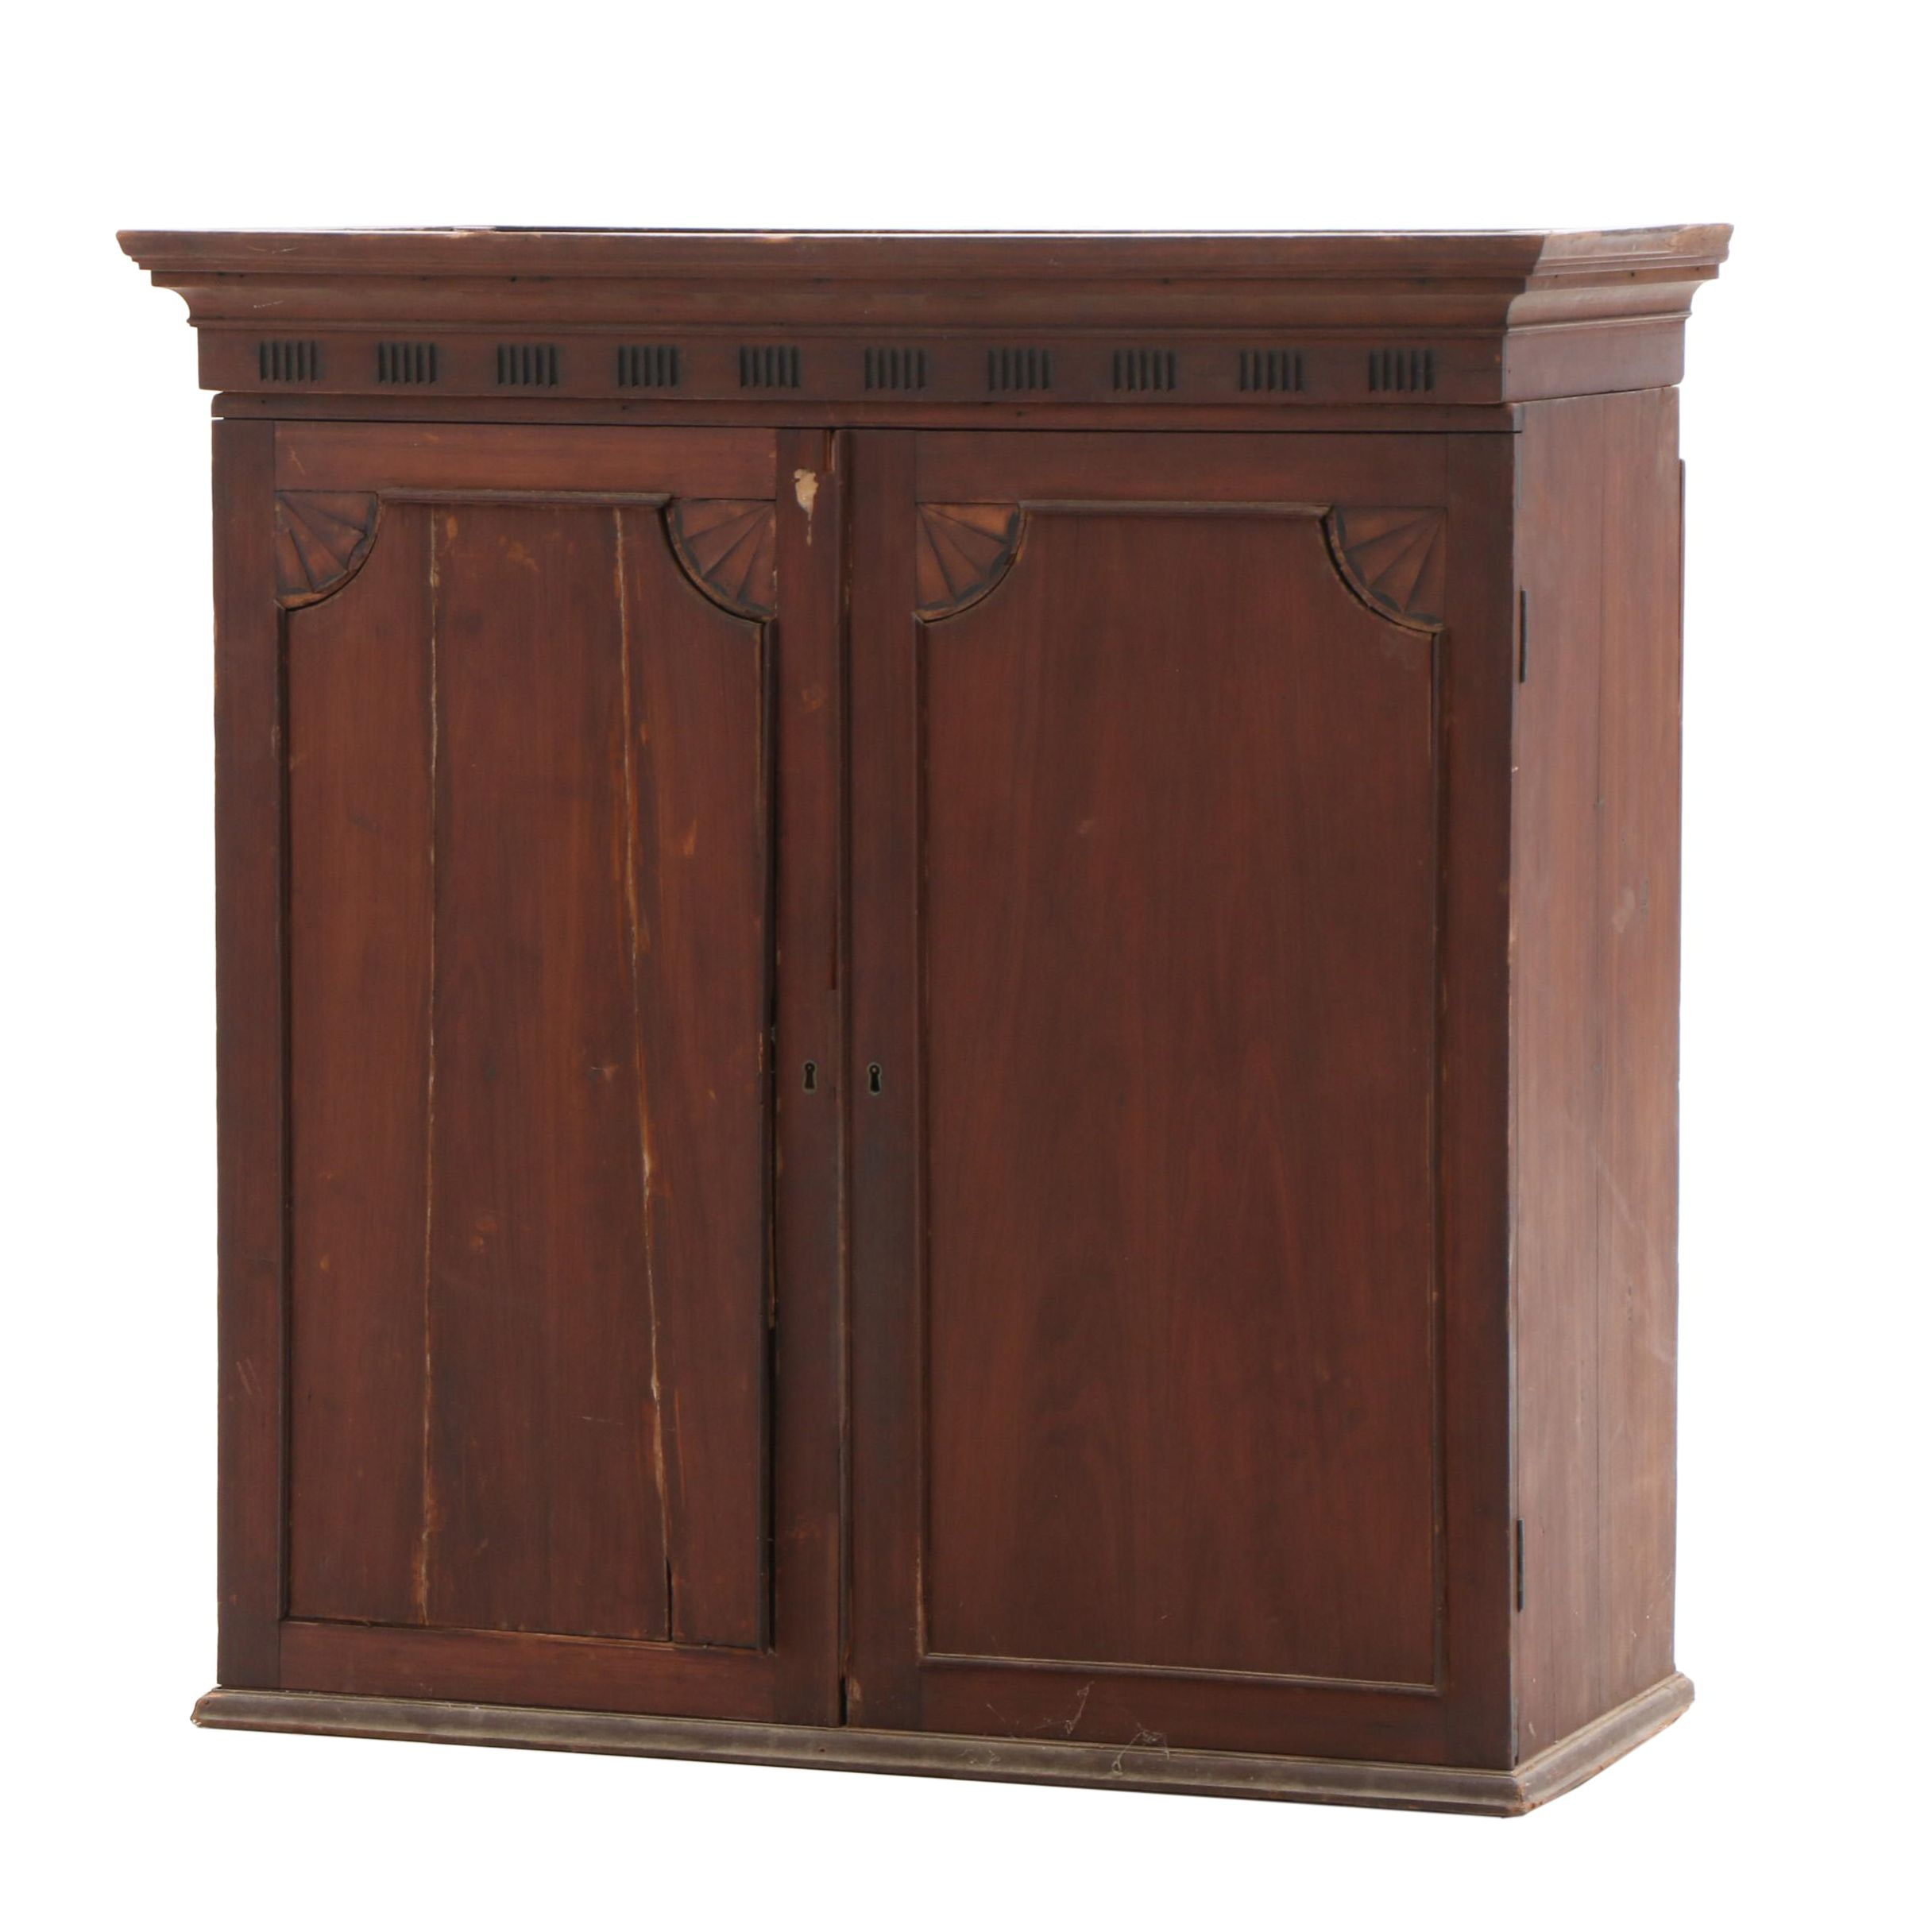 Federal Inlaid Mahogany Cabinet Top